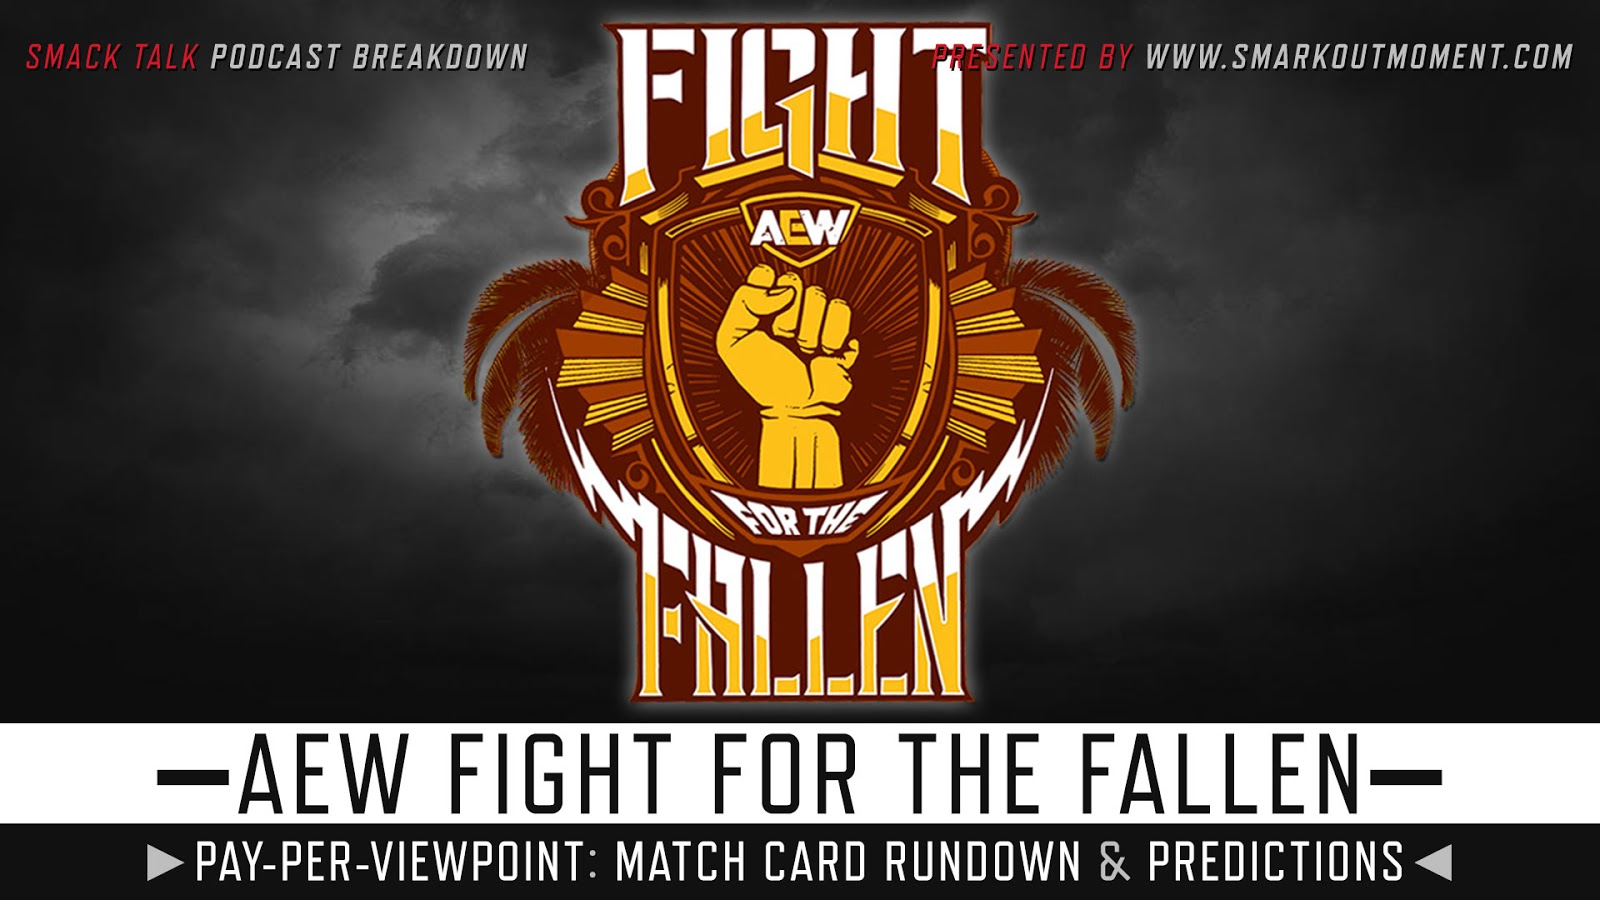 AEW Fight for the Fallen spoilers podcast